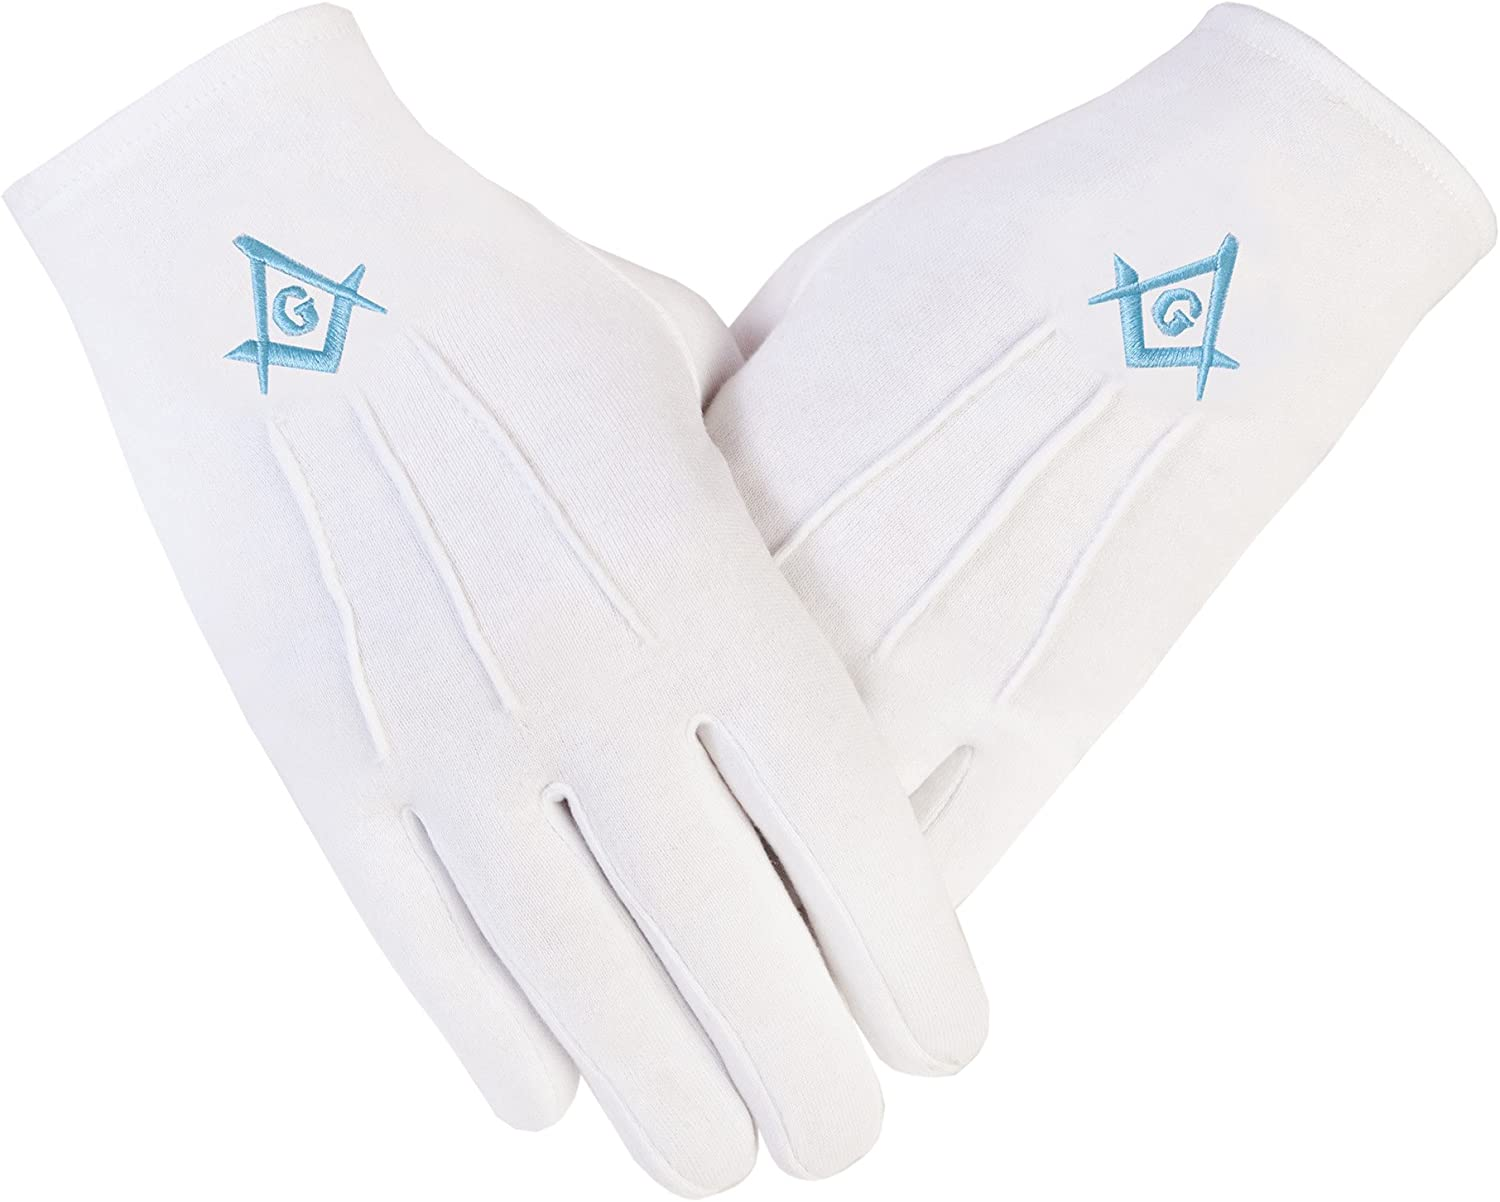 Freemasons Masonic - Guantes de algodón en T. Blue Square y Brújula (SC&G), color blanco: Amazon.es: Ropa y accesorios